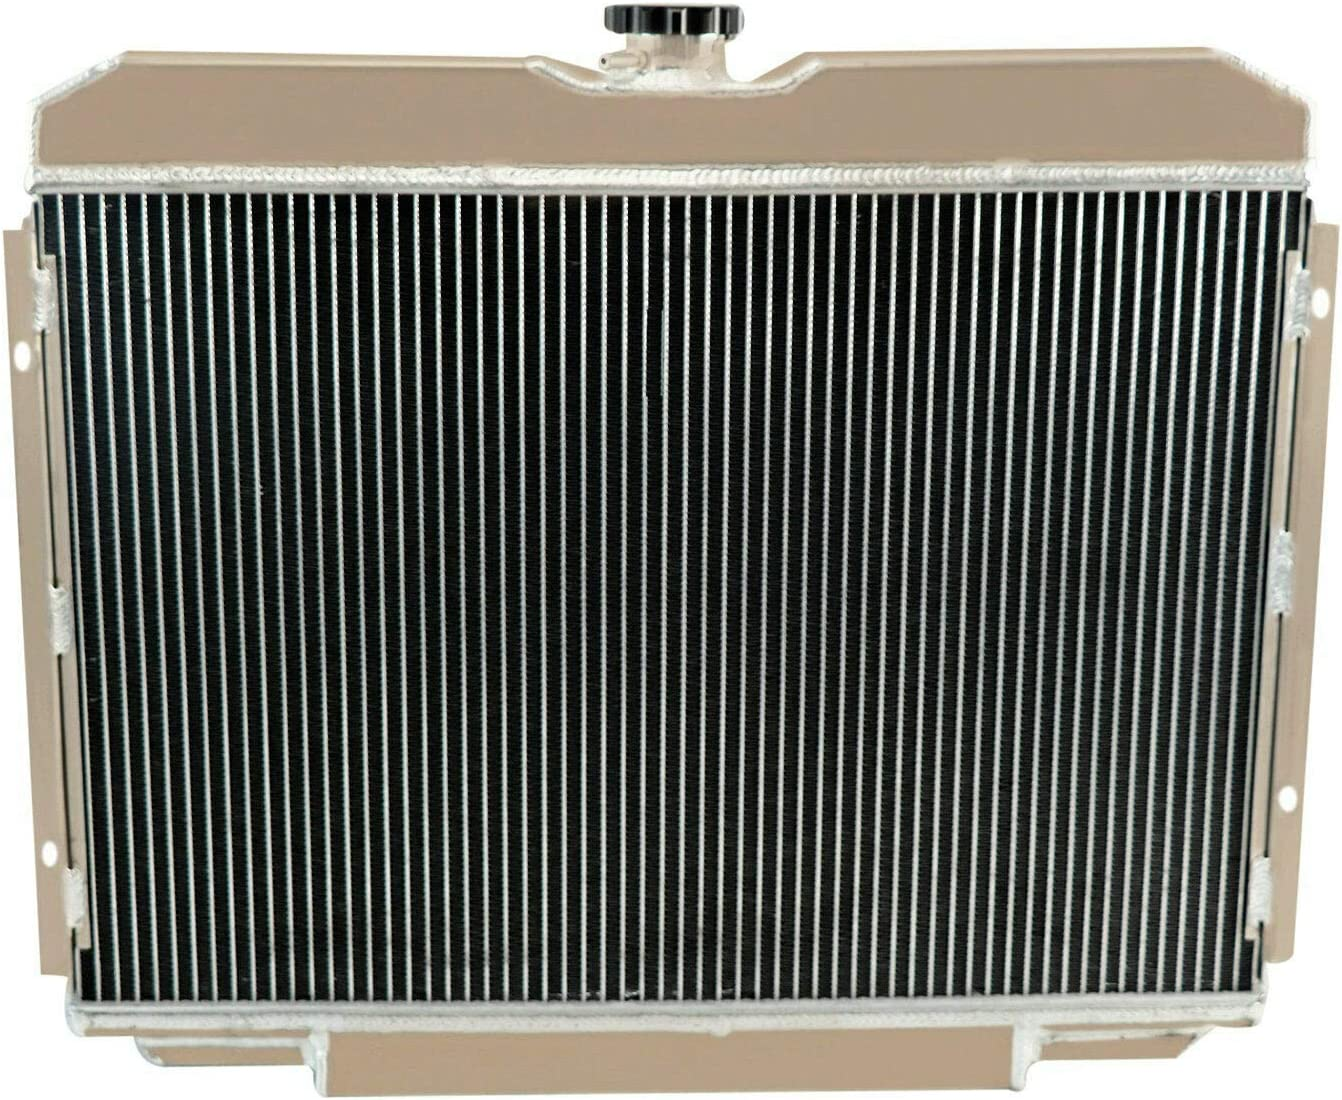 ALLOYWORKS 4 Row All Aluminum Radiator+Shroud Fan+Relay Kit For 1967-1970 Ford Mustang //1968 1969 Mercury Cougar